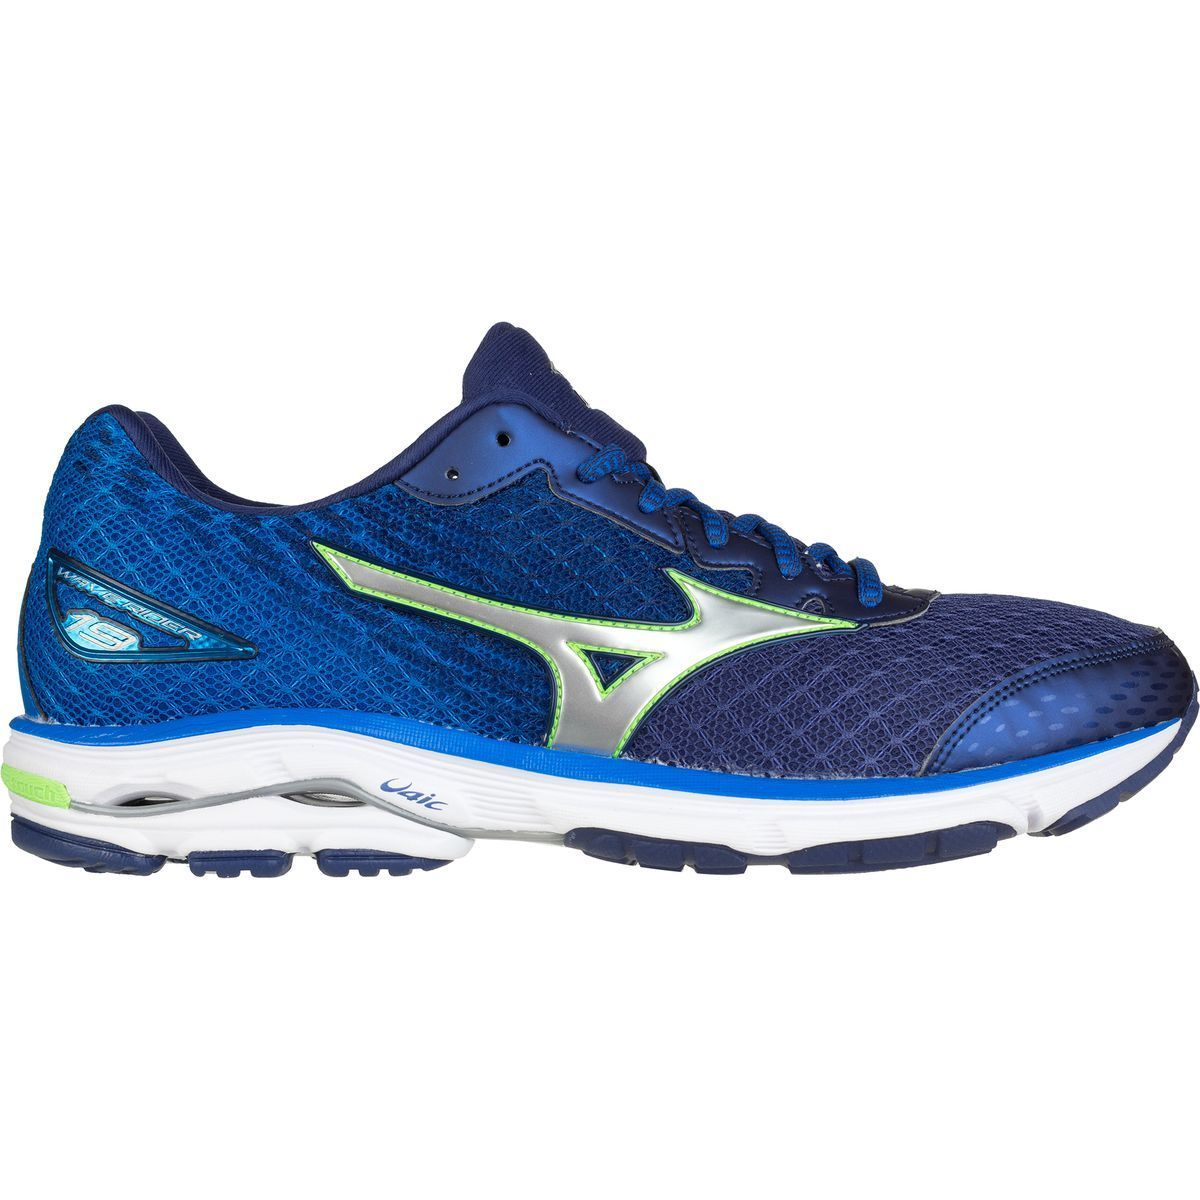 mizuno wave rider 19 running shoe men 39 s competitive cyclist. Black Bedroom Furniture Sets. Home Design Ideas